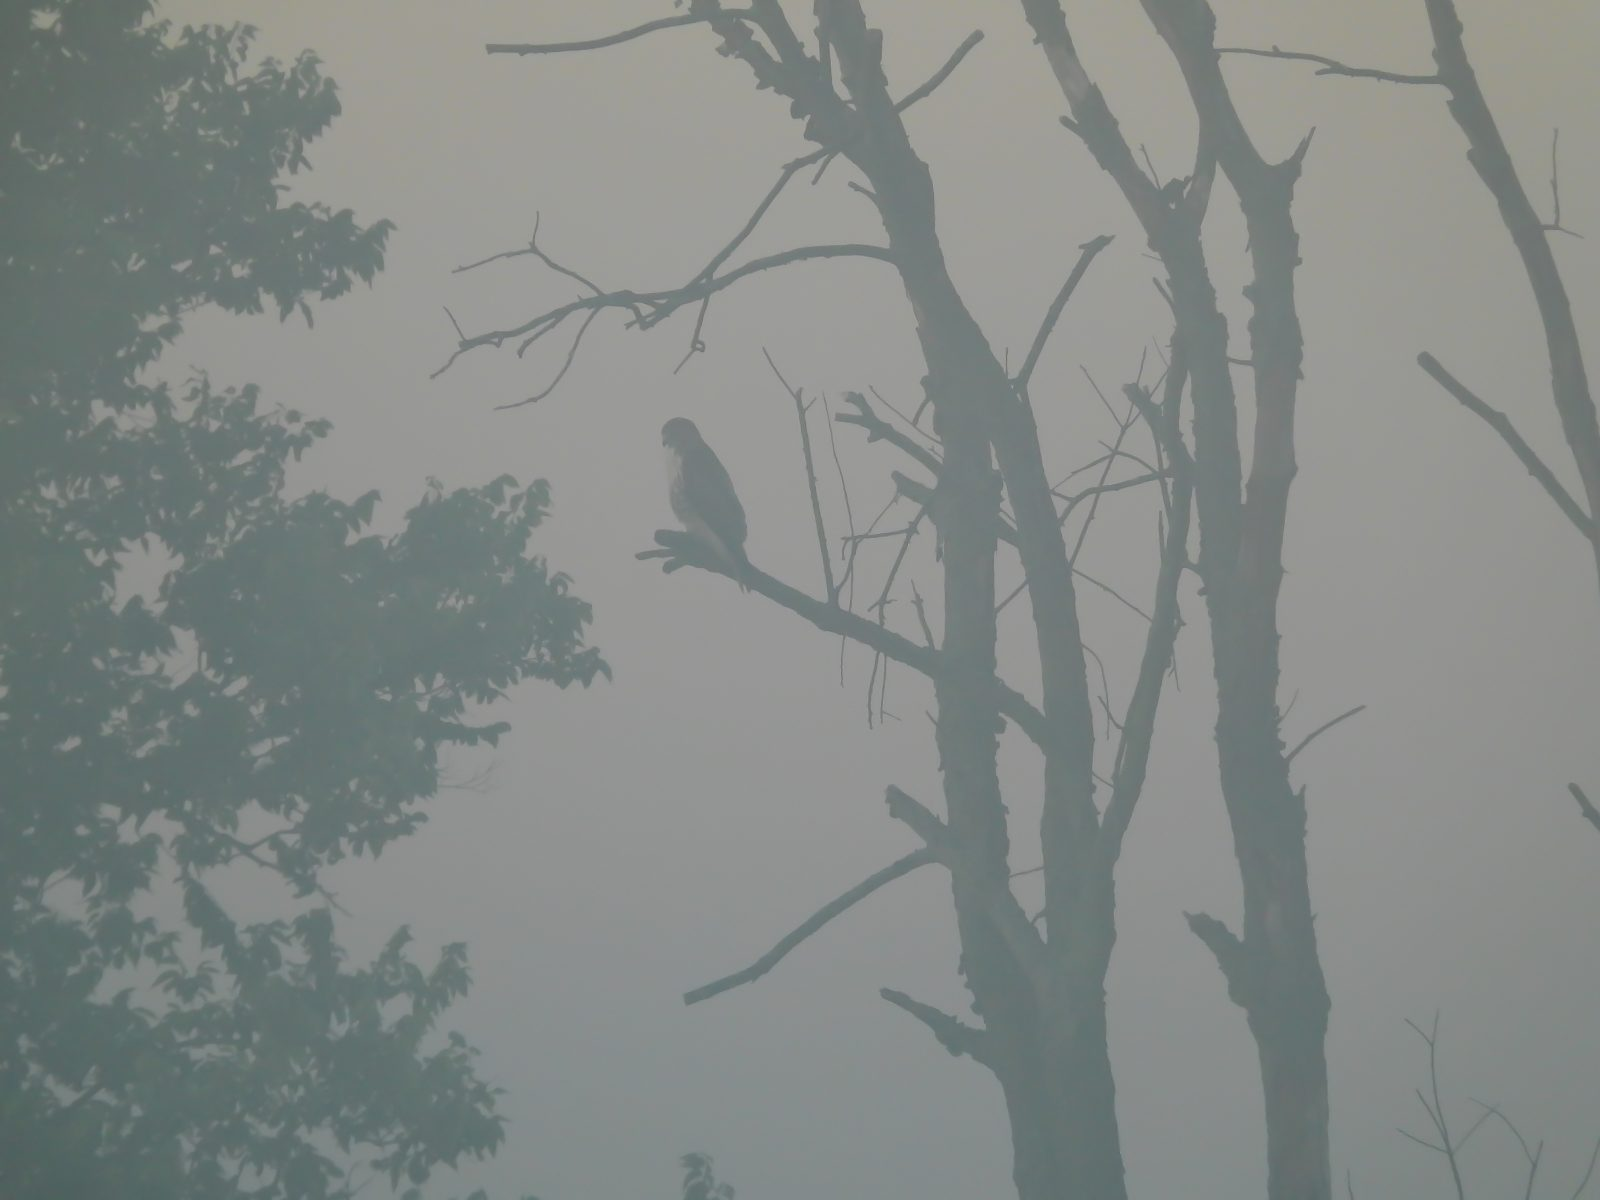 Red-Tailed Hawk Sits on Bare Tree Hunting on Misty Warm Summer Morning